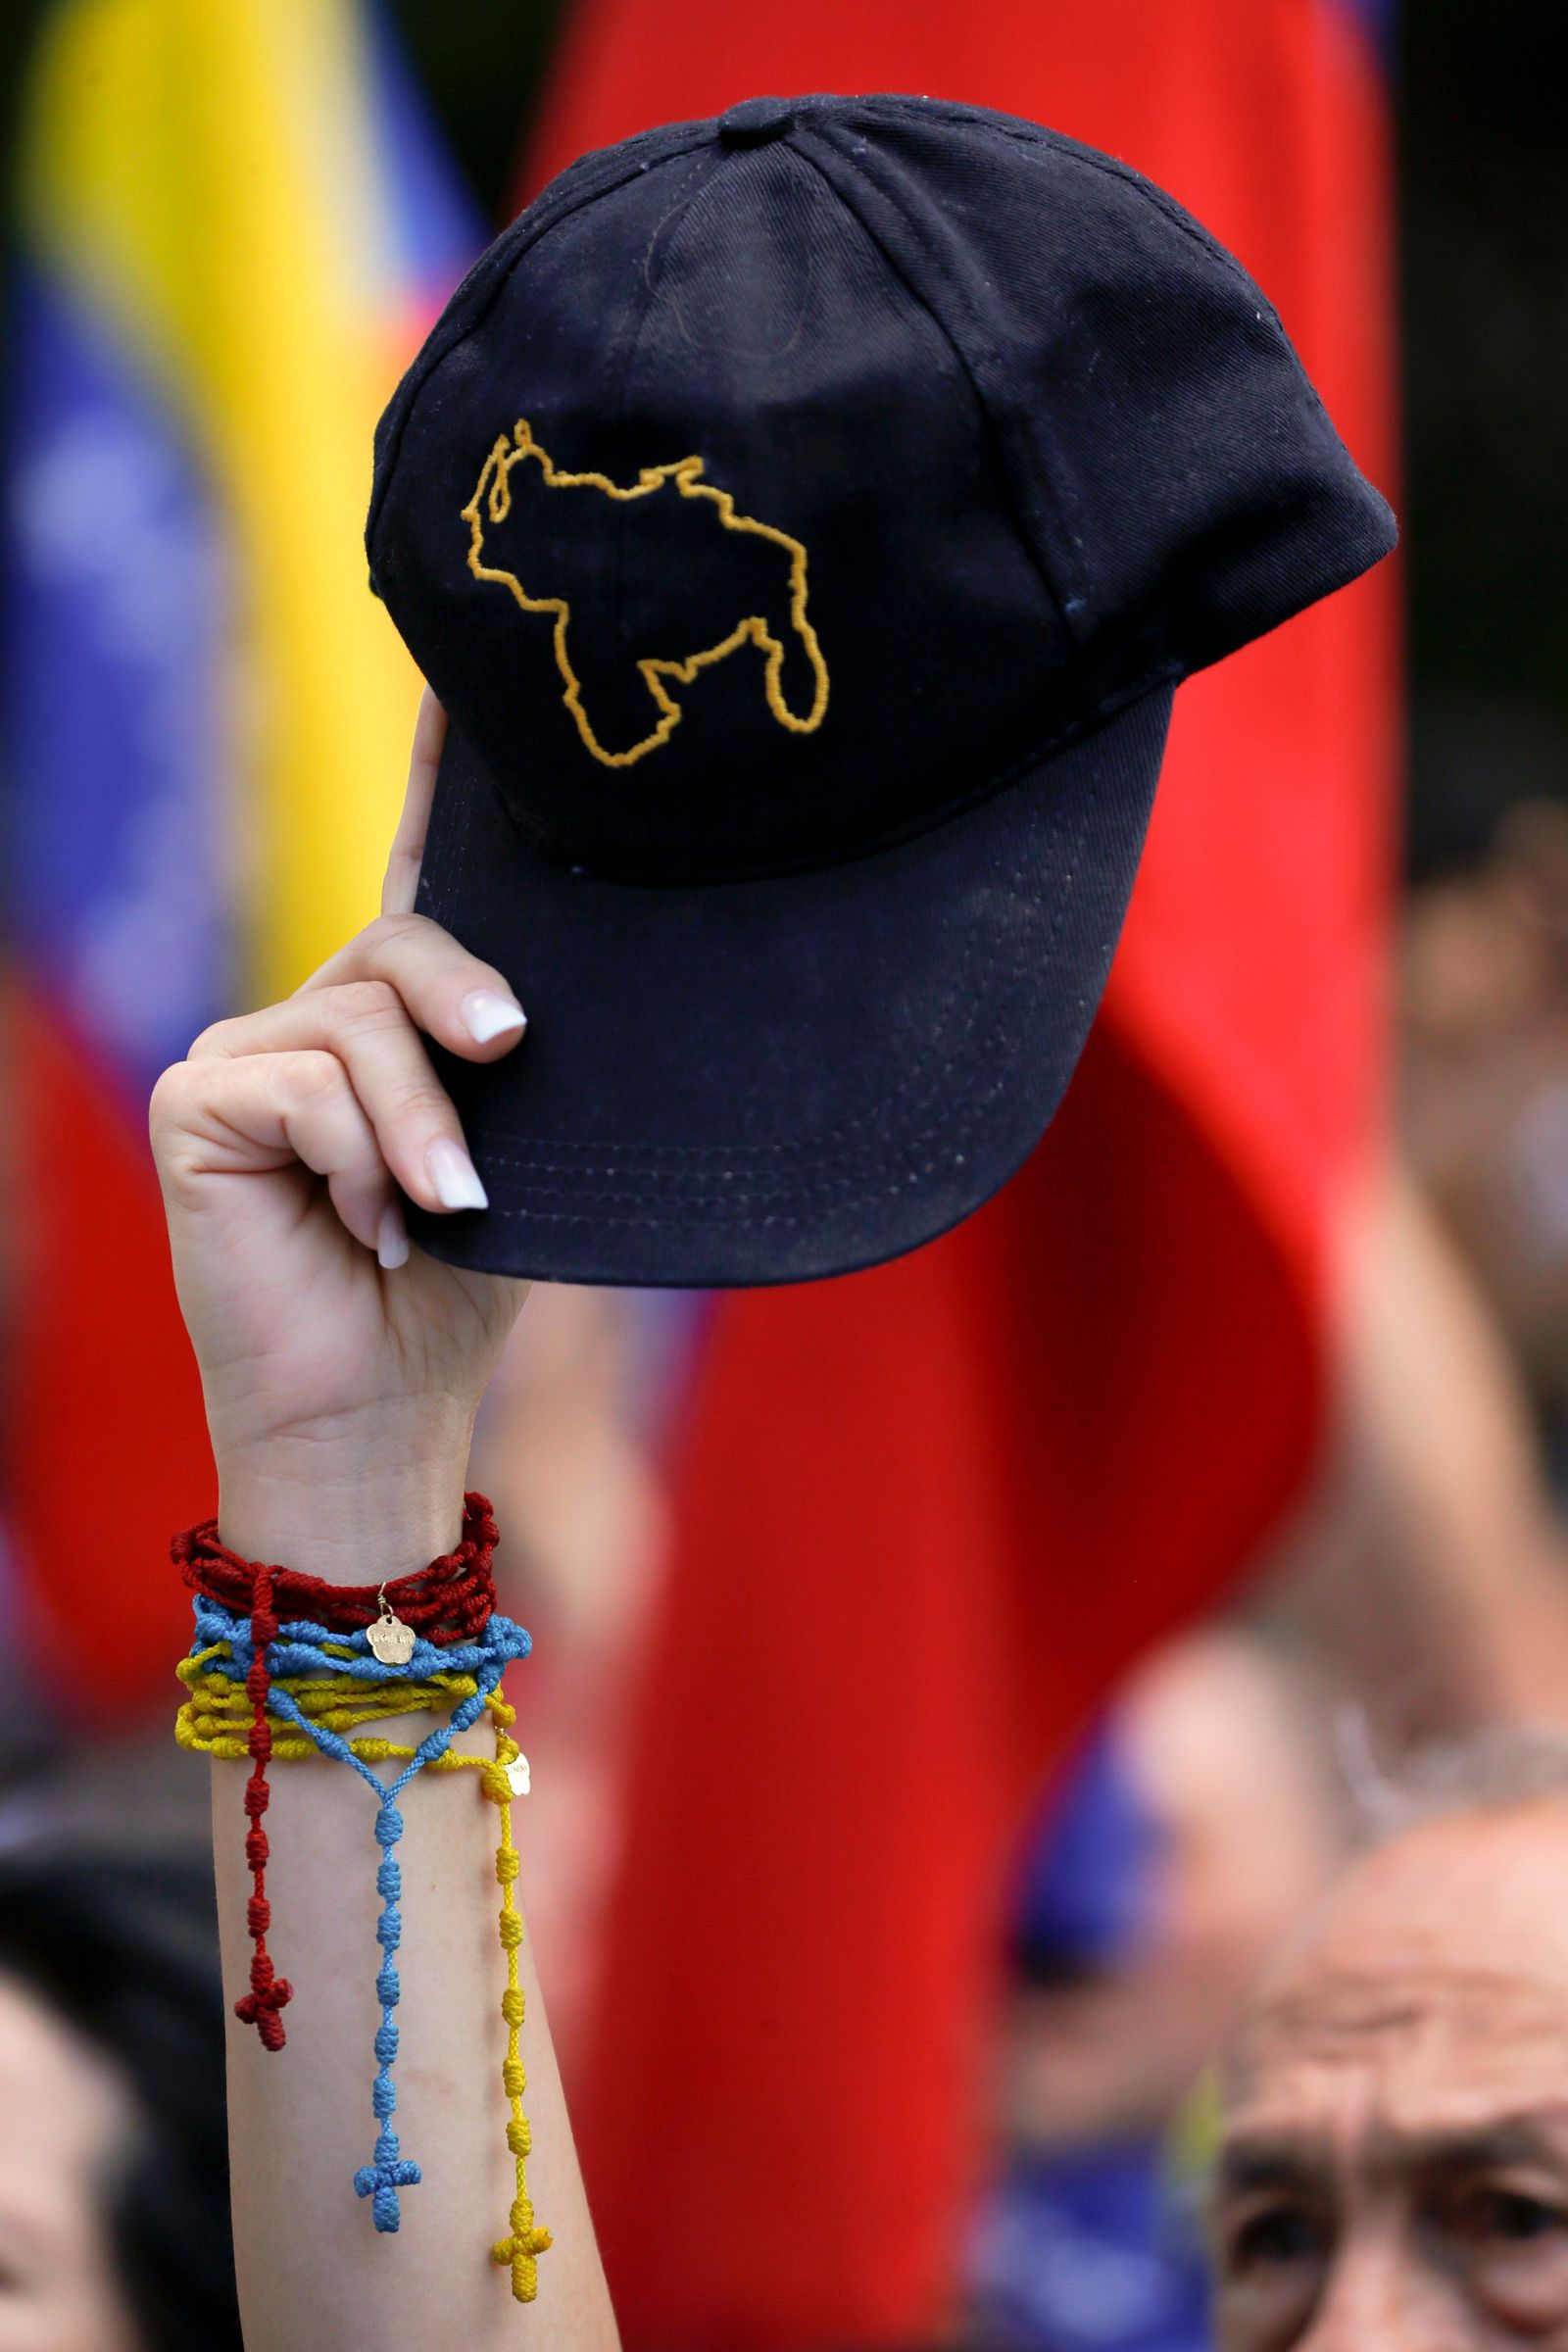 A supporter of opposition leader and self-proclaimed interim president Juan Guaido holds a cap with the outline of Venezuela's map during a rally to protest outages that left most of the country scrambling for days in the dark in Caracas, Venezuela, Saturday, April 6, 2019. (AP Photo/Fernando Llano)